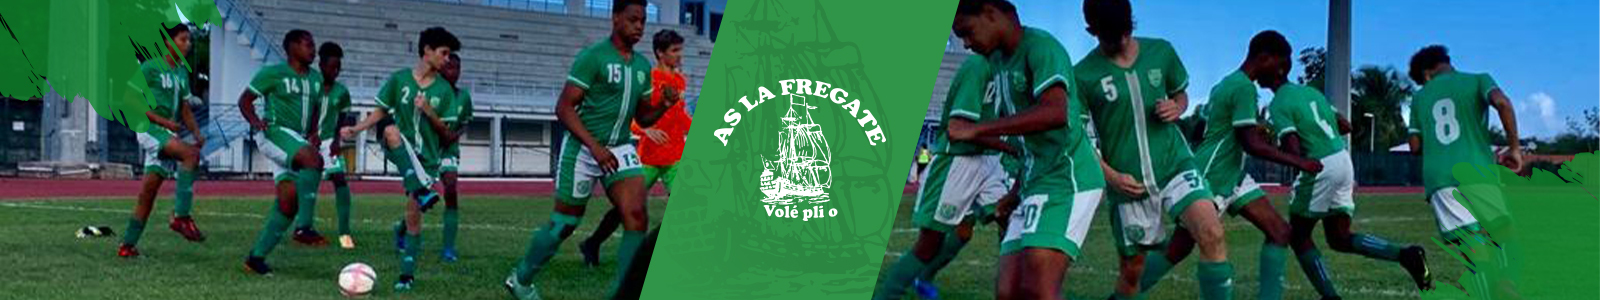 ASCAL LA FREGATE : site officiel du club de foot de DESHAIES - footeo